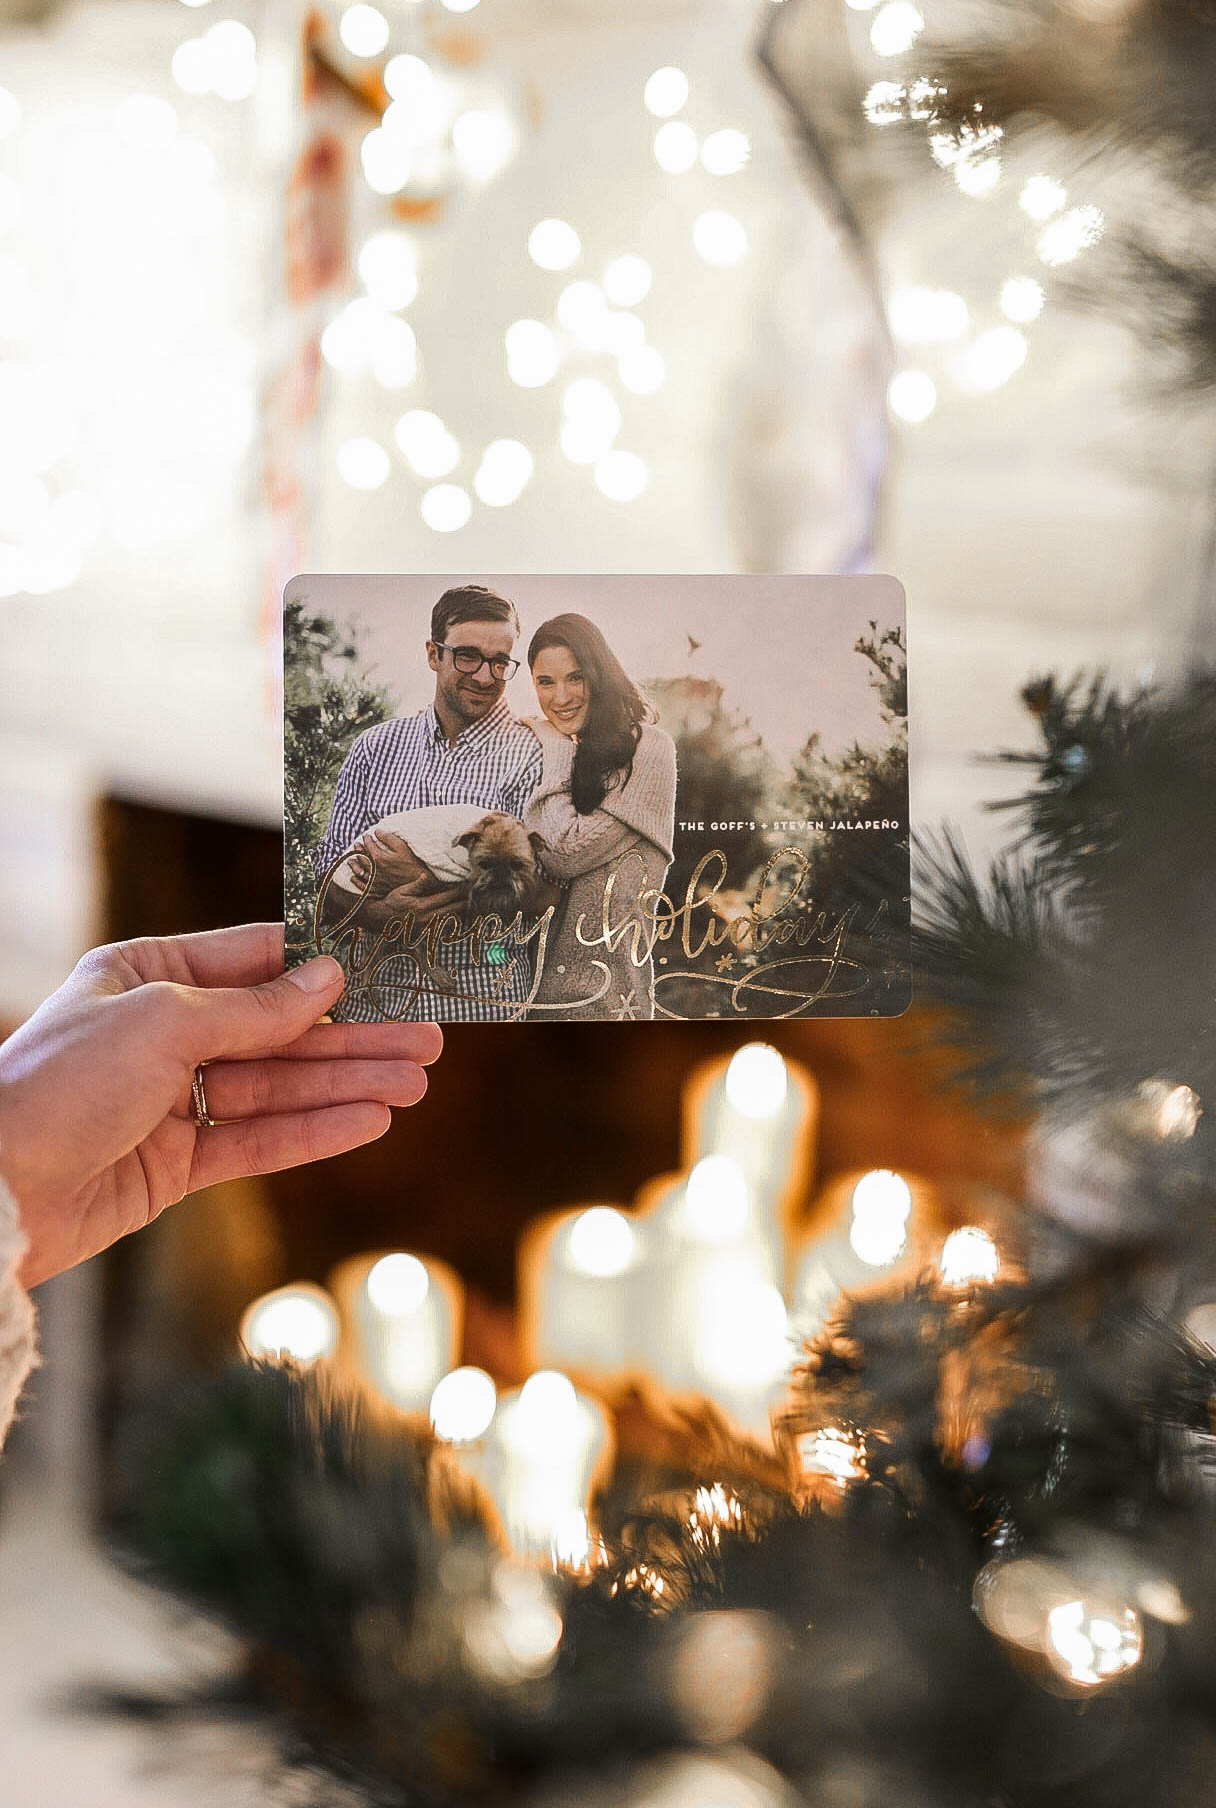 DTKAustin shares tips on how to take the best family holiday and Christmas cards with Minted. | holiday photo tips | family christmas photo tips | christmas card photo tips || Dressed to Kill #holidayphotos #christmascardtips #holidayphotoshoot - How to Take Better Christmas Card Photos by popular Austin style blogger Dressed to Kill